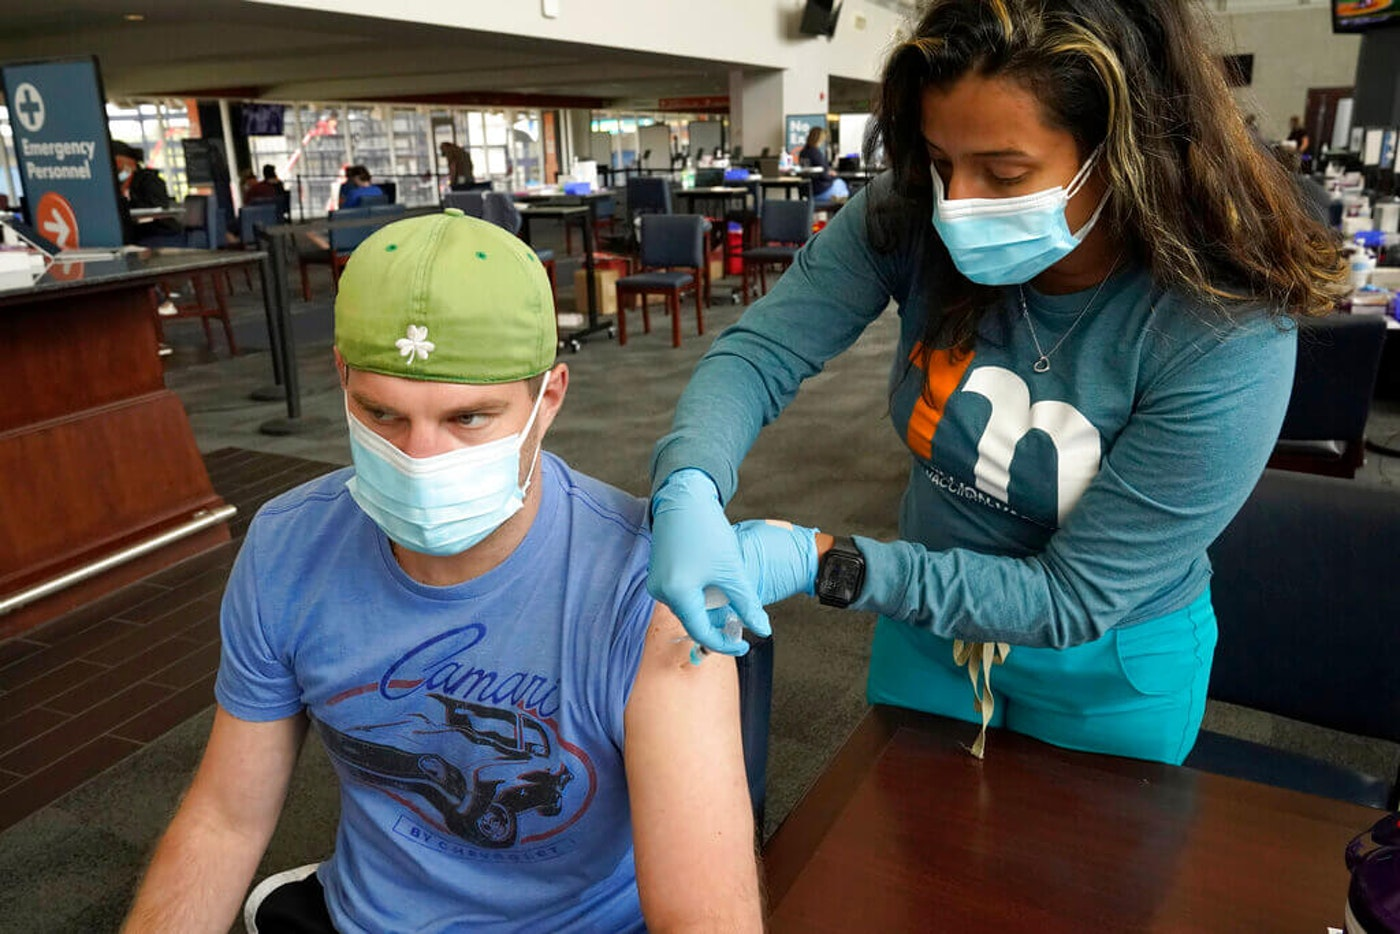 Kevin Fisher, of Quincy, Mass., left, receives his second shot of Moderna COVID-19 vaccine from RN Katherine Francisco, of Avon, Mass., right, at a mass vaccination clinic, Wednesday, May 19, 2021, at Gillette Stadium, in Foxborough, Mass. A month after every adult in the U.S. became eligible for the vaccine, a distinct geographic pattern has emerged: The highest vaccination rates are concentrated in the Northeast, while the lowest ones are mostly in the South. (AP Photo/Steven Senne)